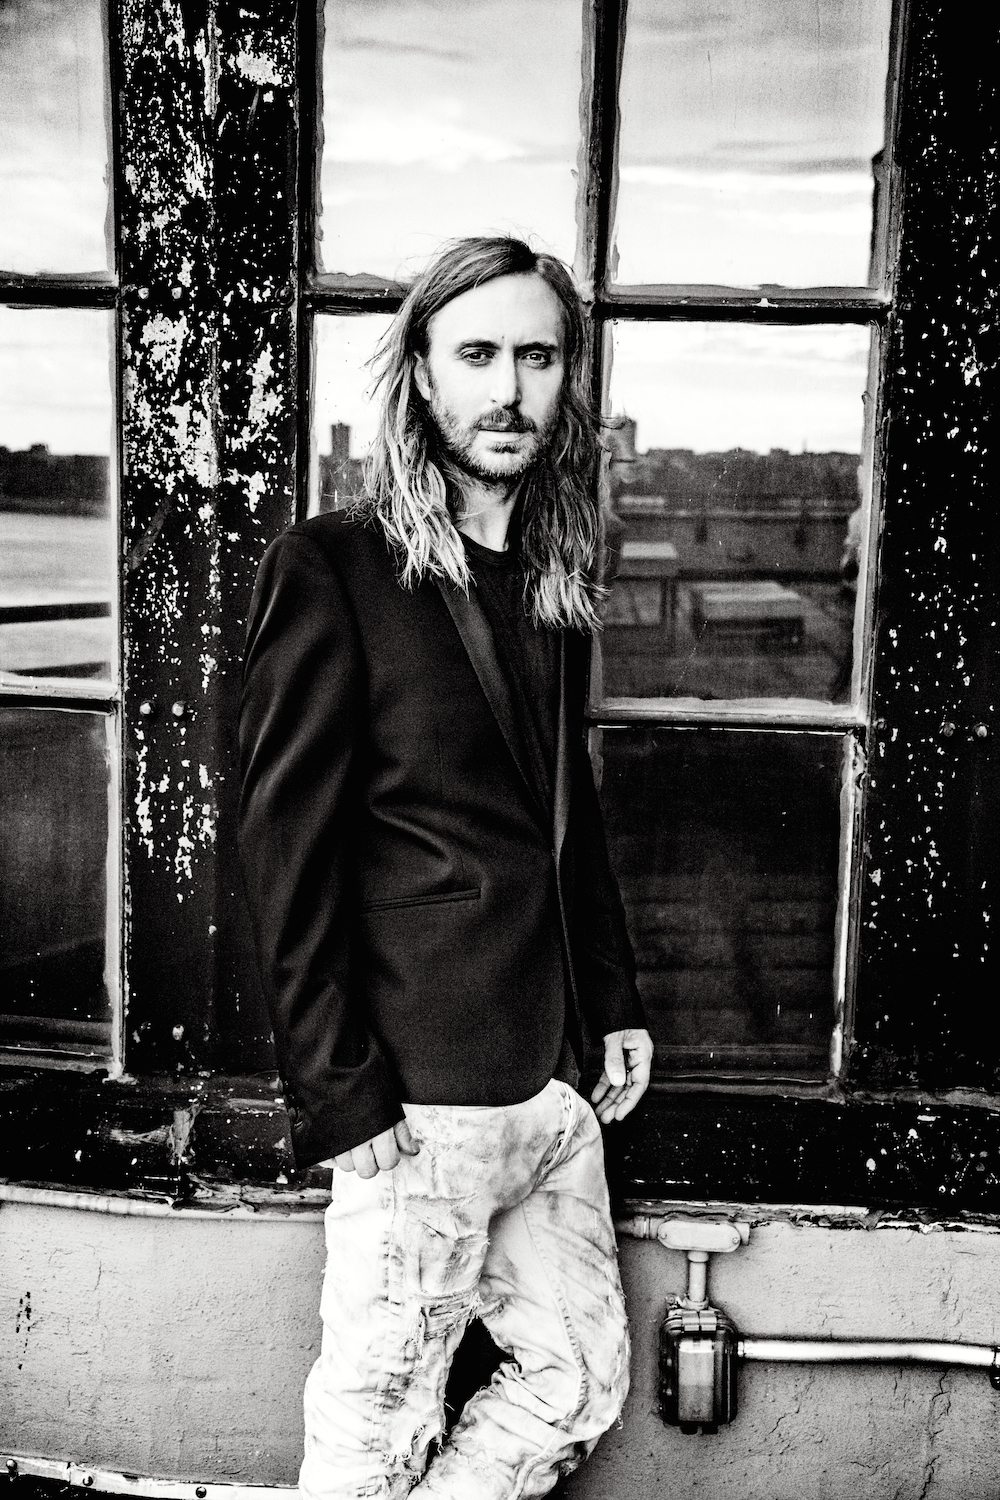 David-Guetta-–-MAIN1-credit-Ellen-Von-Unwerth-original